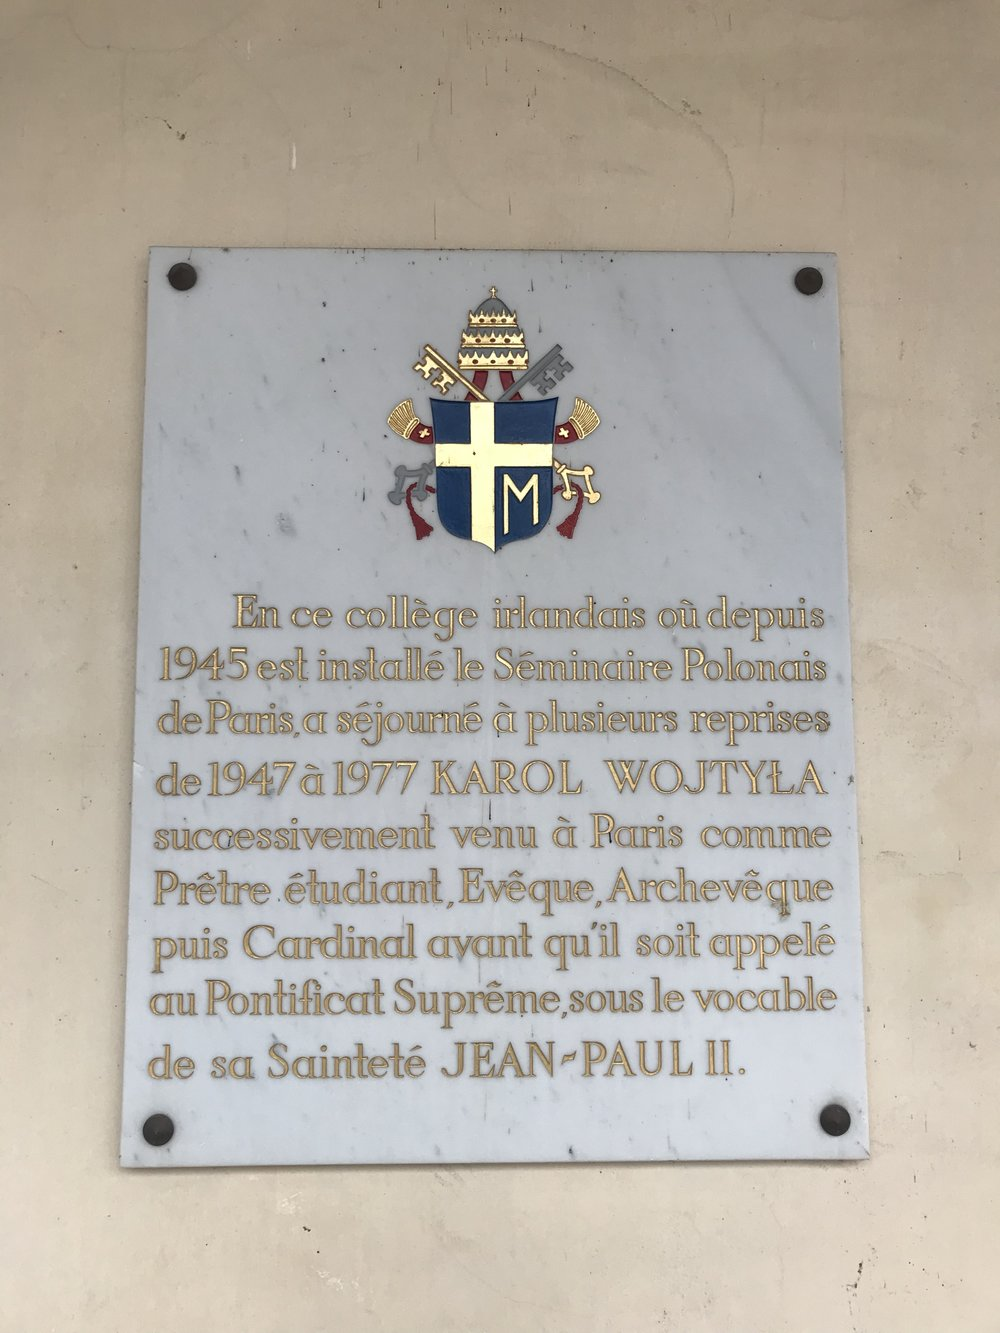 A commemorative plague in the college's court about the Polish Seminary in Parias and visits of Karol Wojtyla